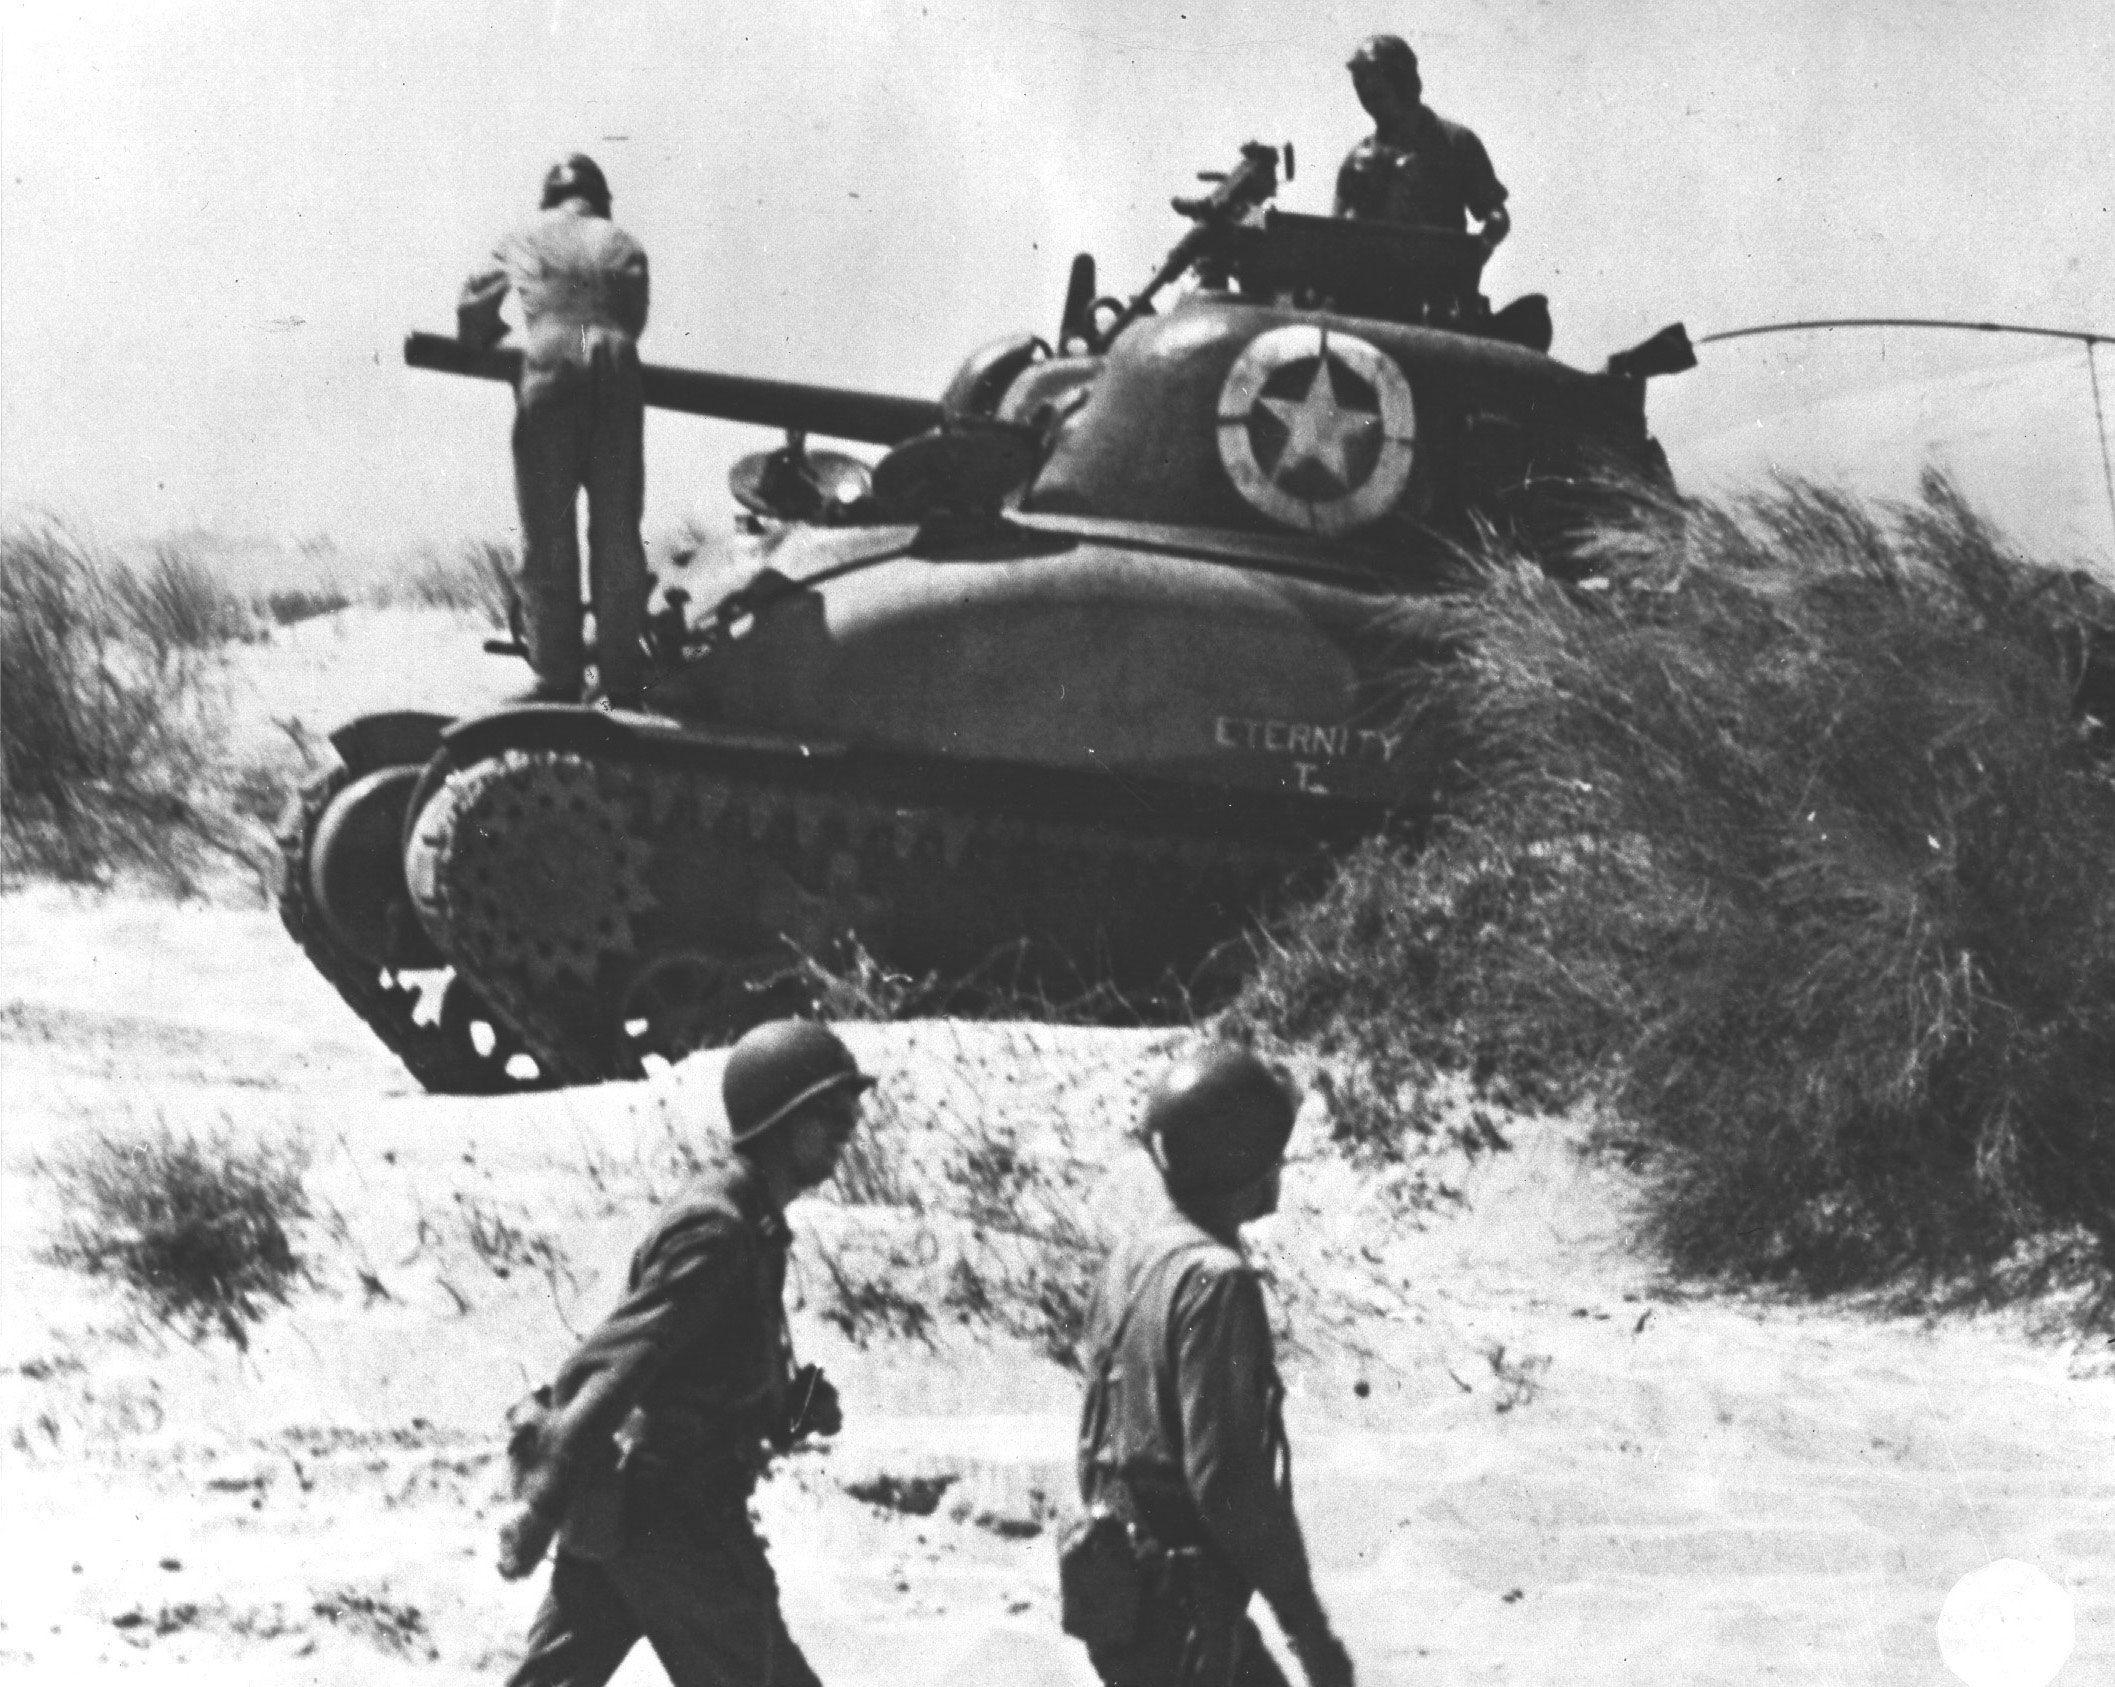 Photo crew of m sherman tank ueternityu checking the tank after